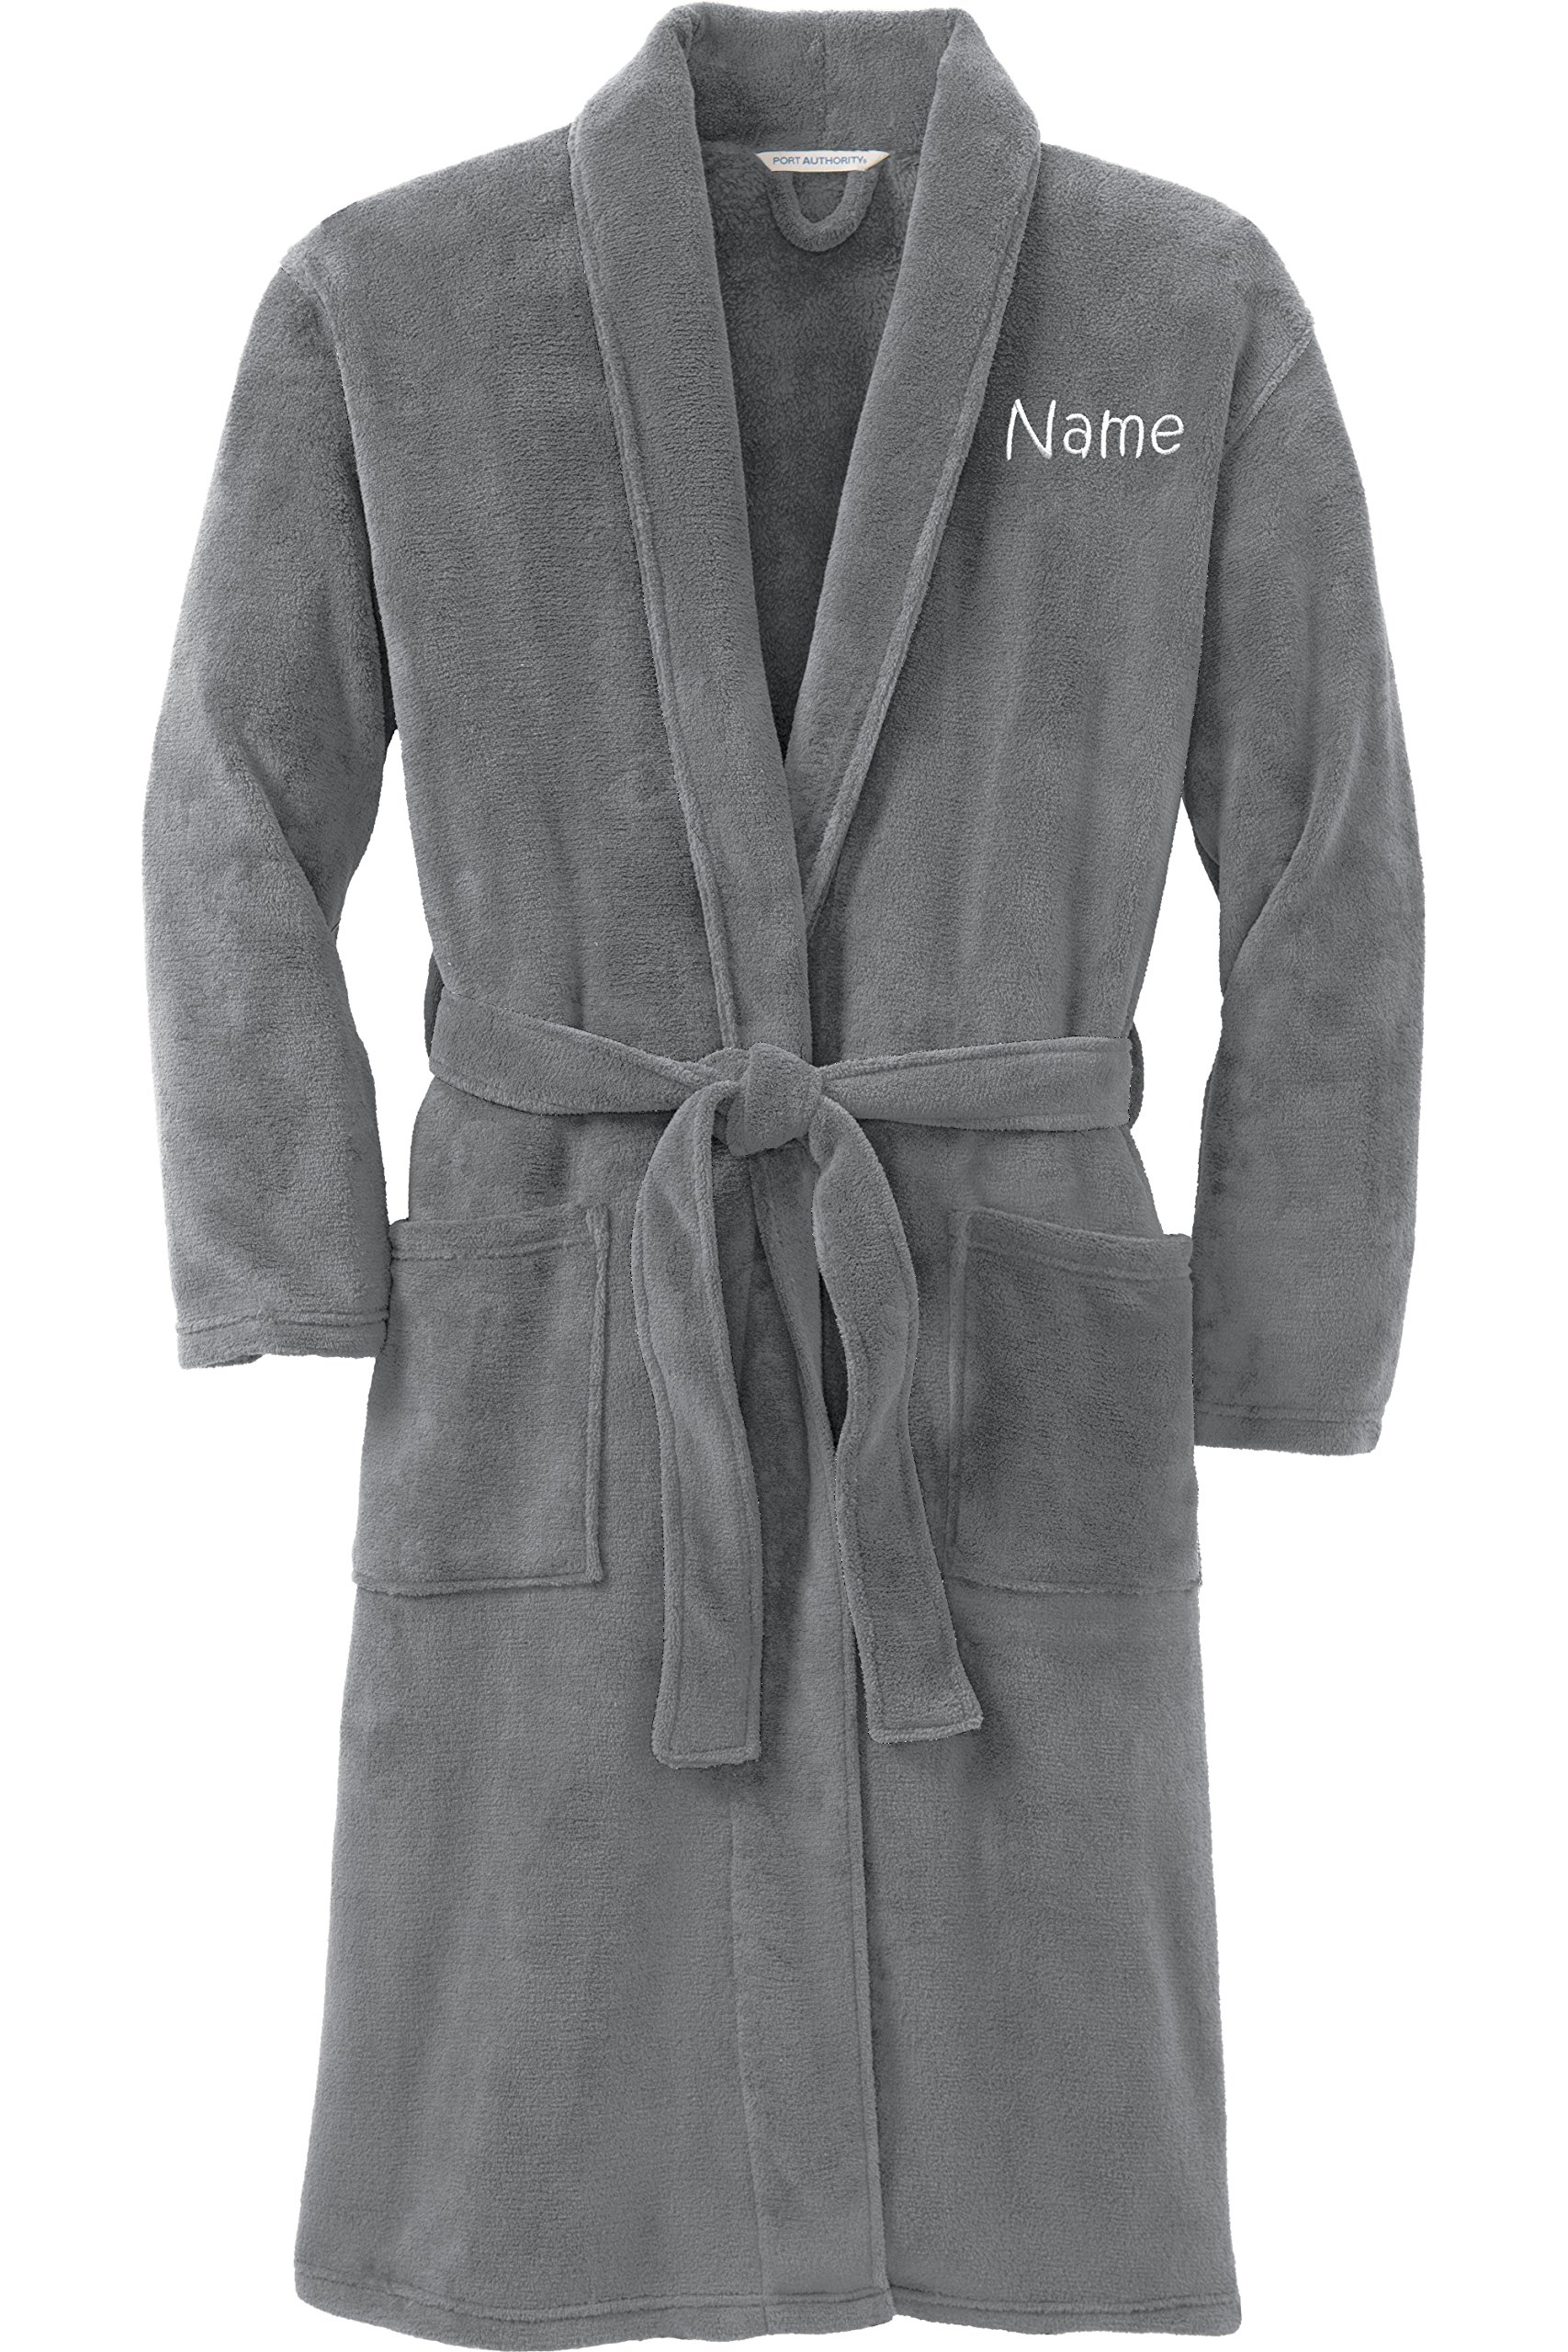 Personalized Plush Microfleece Robe with Embroidered Name, Smoke, Large/X-Large